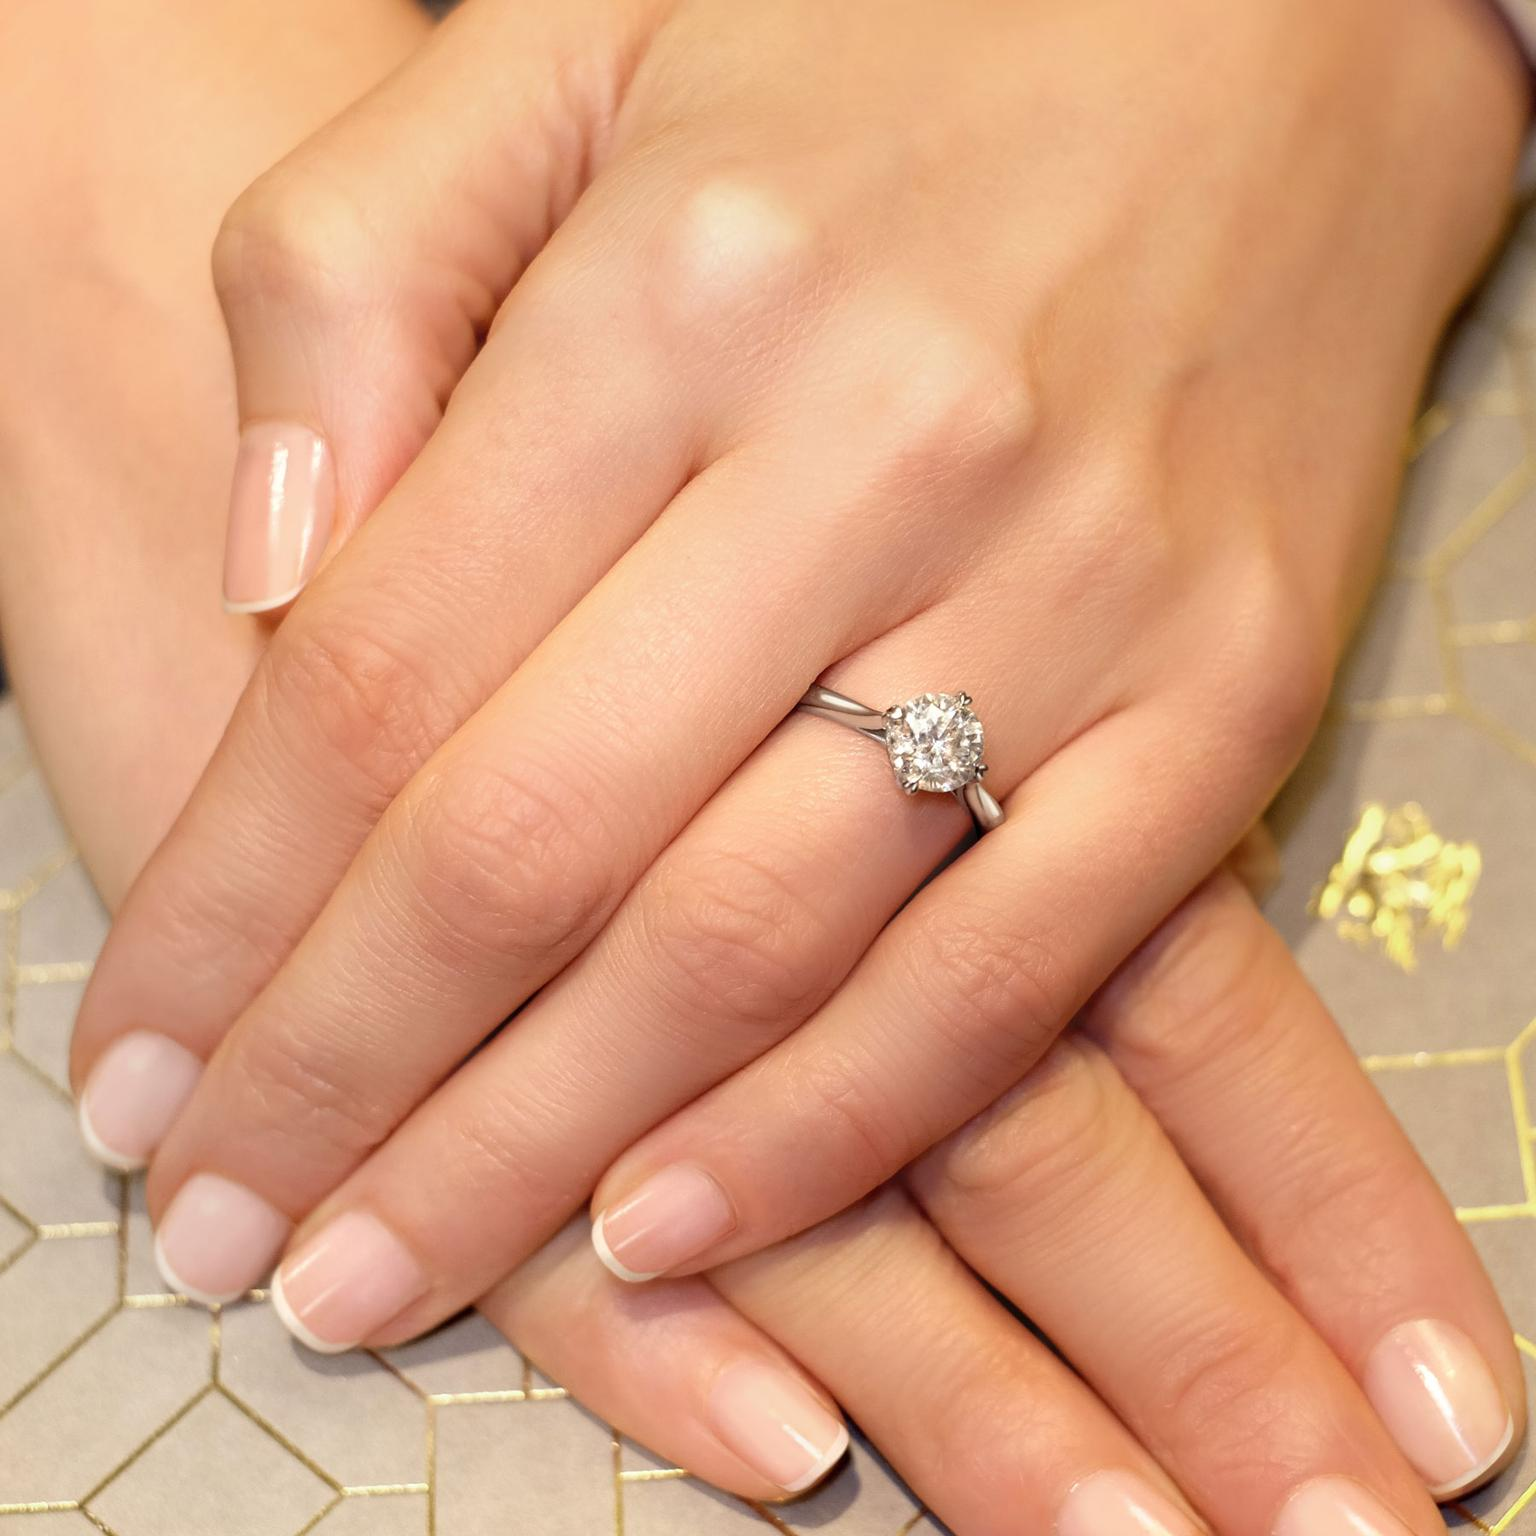 Best Nails For Engagement Ring